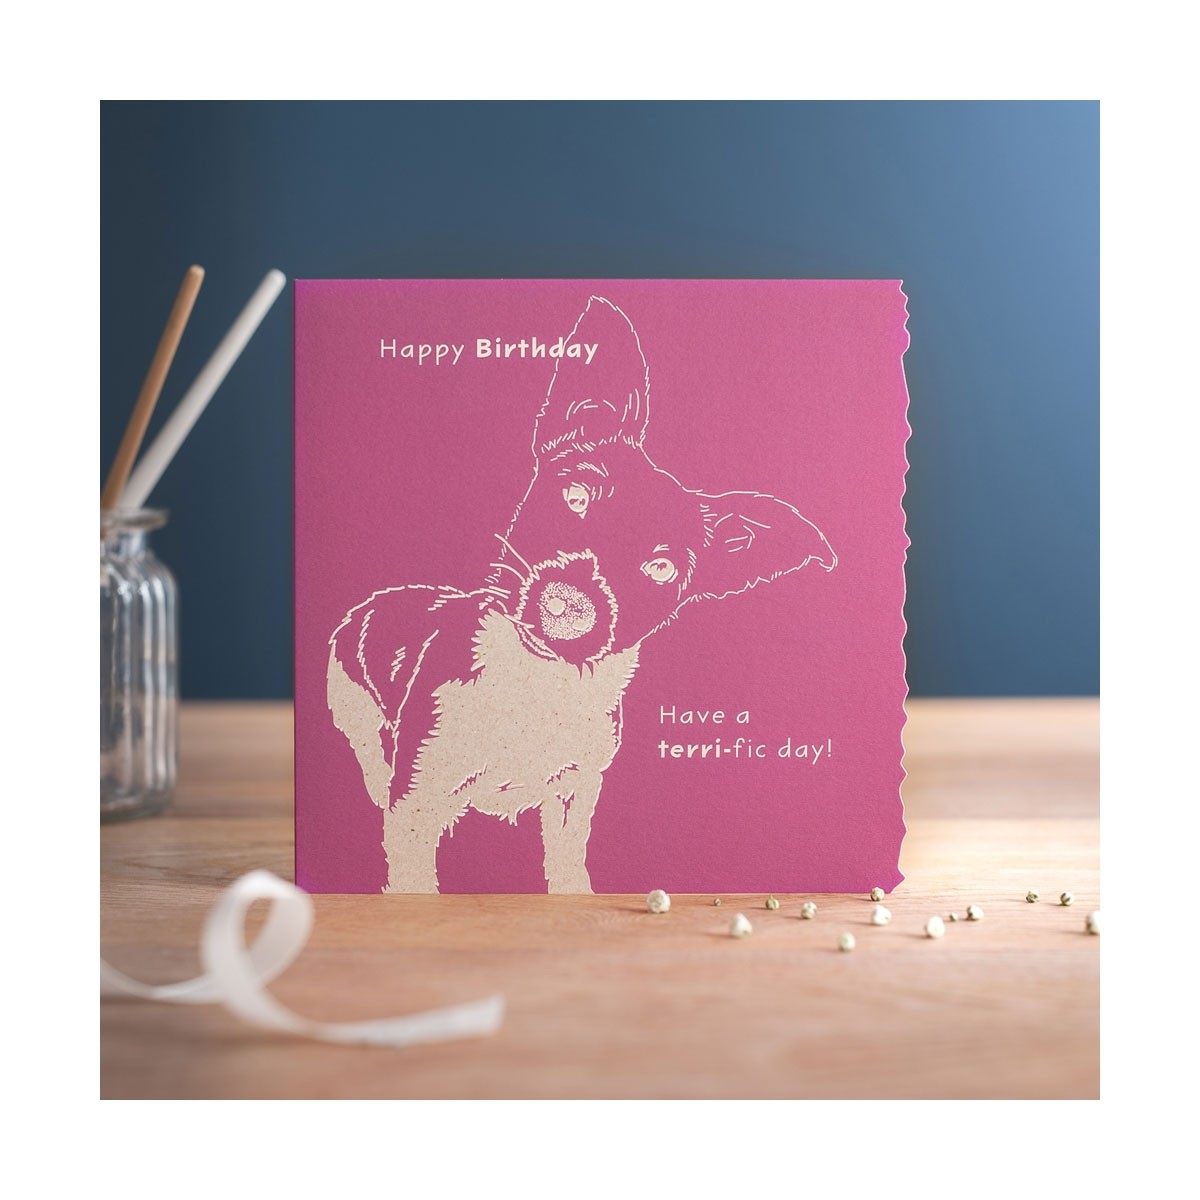 Deckled Edge Colour Block Card  - Thomas Irving's equestrian and accessories store  Deckled Edge Colour Block Card